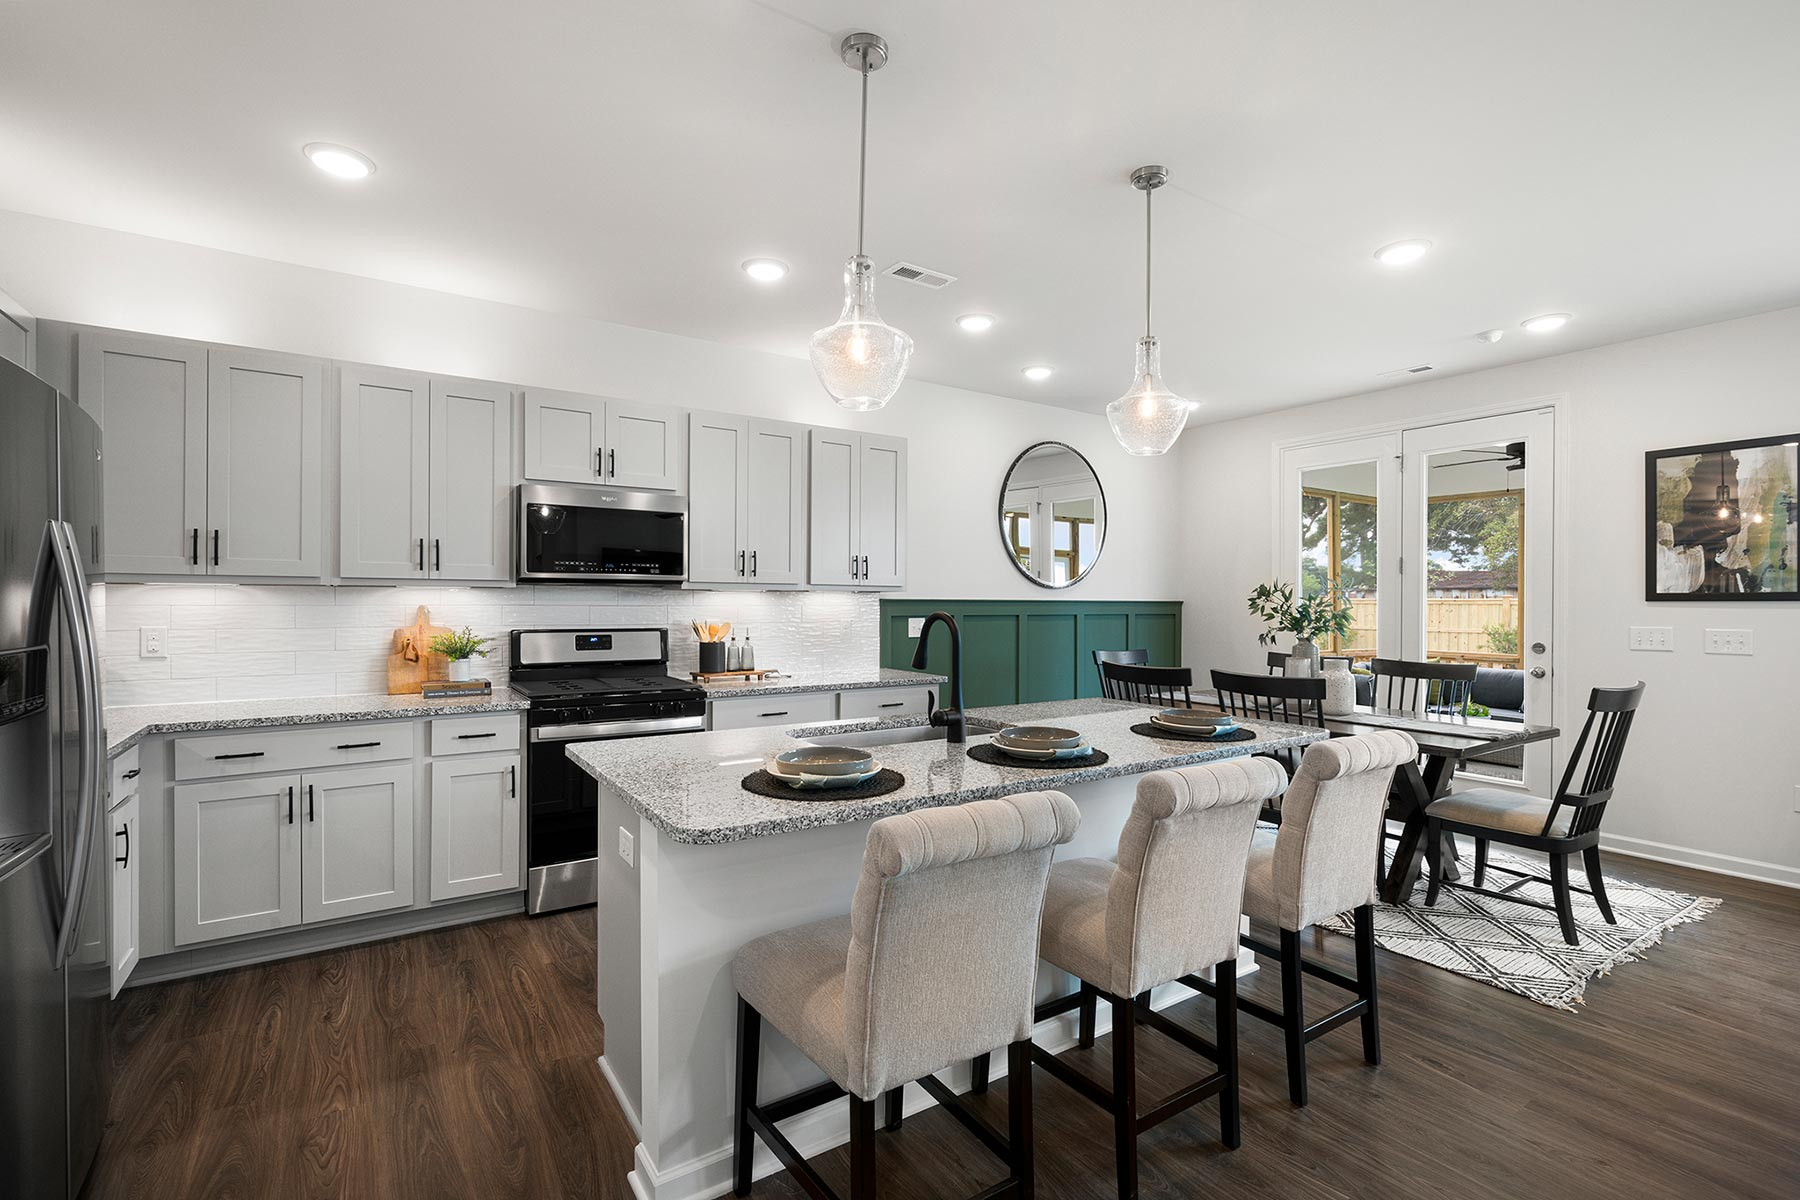 Gaines Plan Kitchen at Bedford at Flowers Plantation in Clayton North Carolina by Mattamy Homes